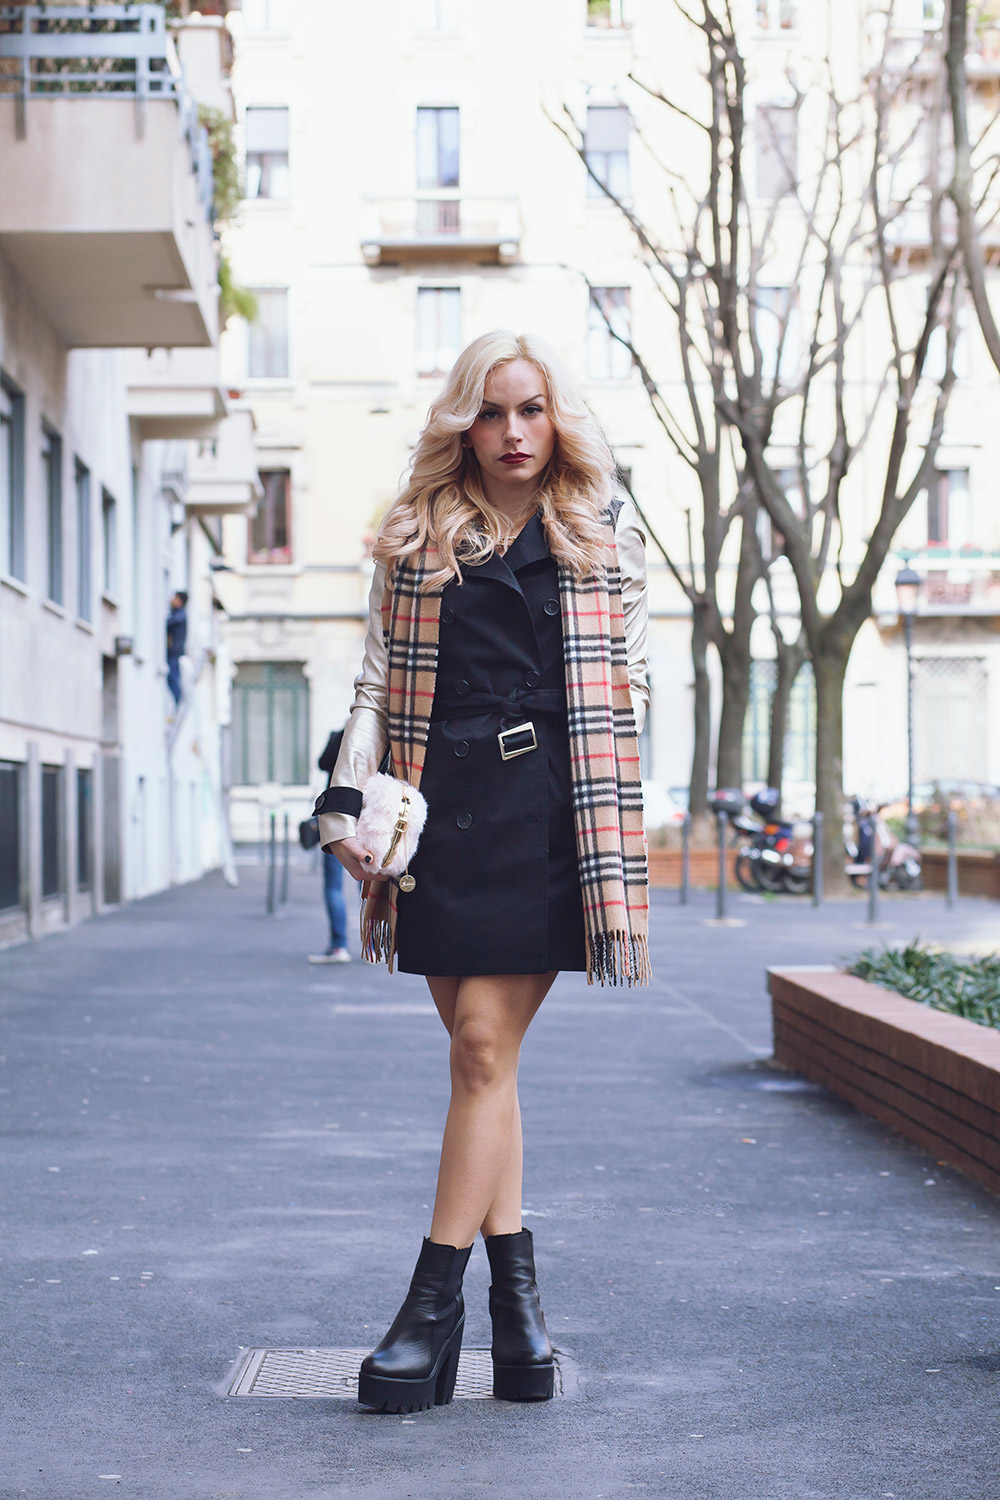 Trench primavera estate 2015, Ventifive abbigliamento Made in Italy, Kammi calzature, trench stile Burberry, best outfit Milan Fashion Week, streetstyle Milan Fashion Week - fashion blogger It-Gil by Eleonora Petrella